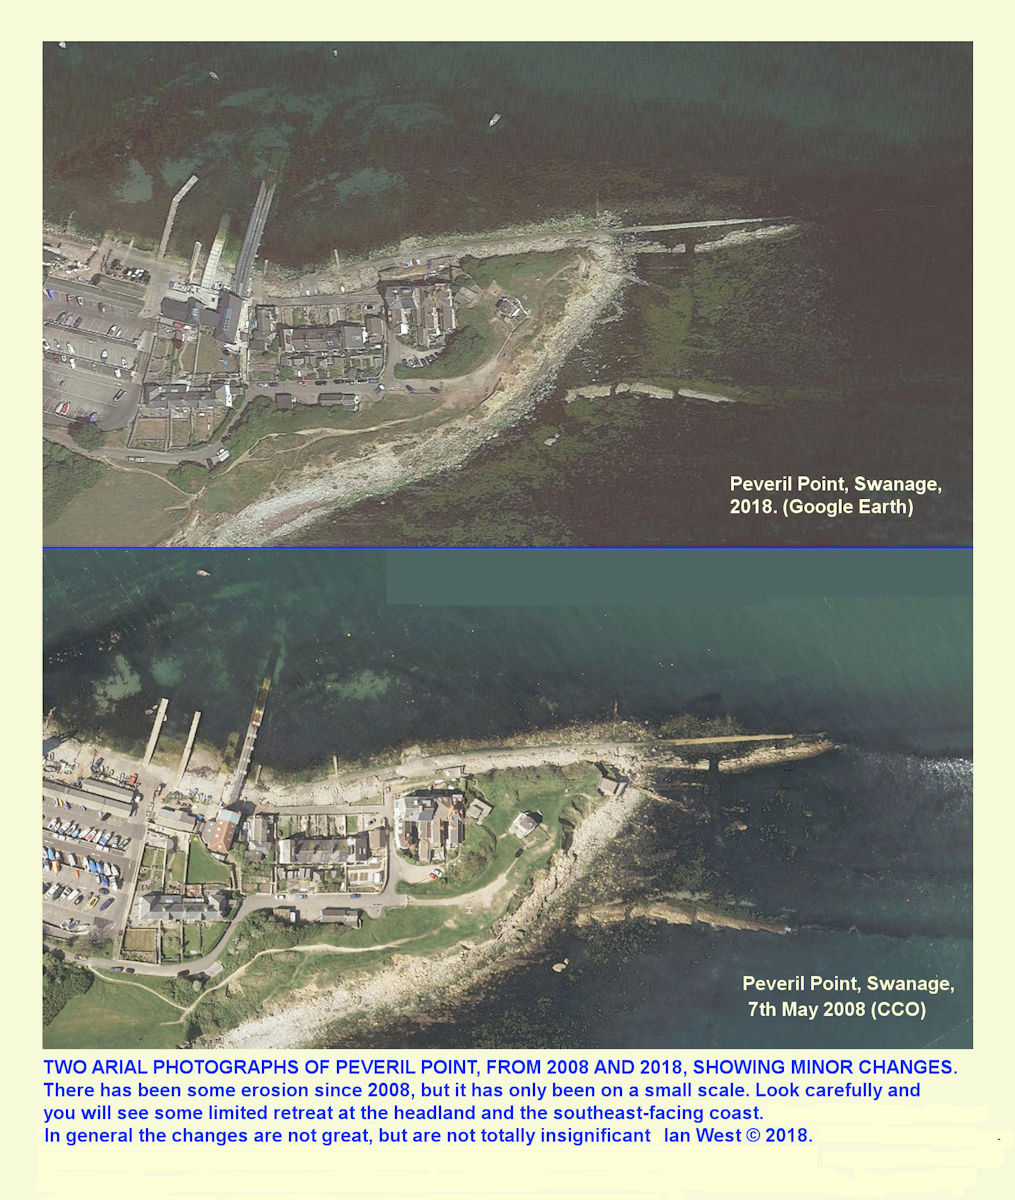 Comparitive aerial views of Peveril Point, Swanage, in 2008 and in 2009